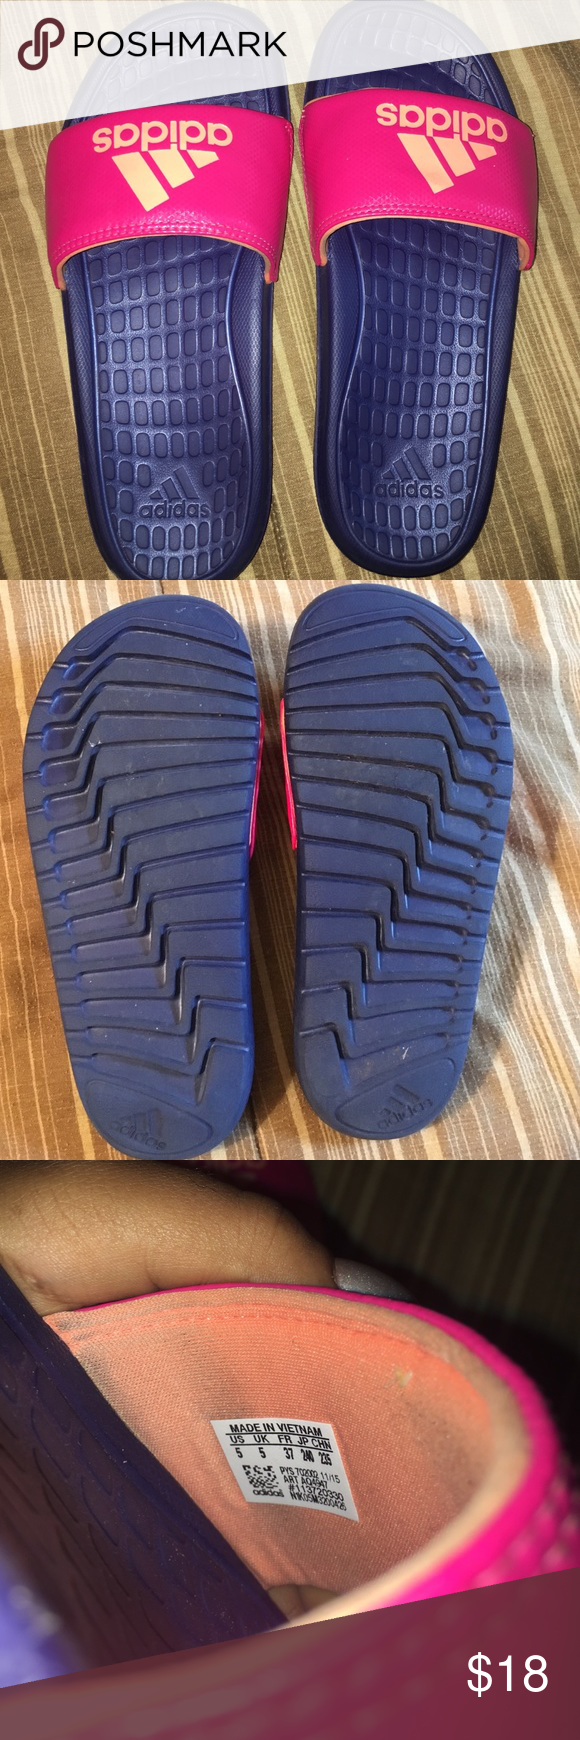 Adidas Slides Good as new .. Only wore 1 time! Adidas Shoes Slippers